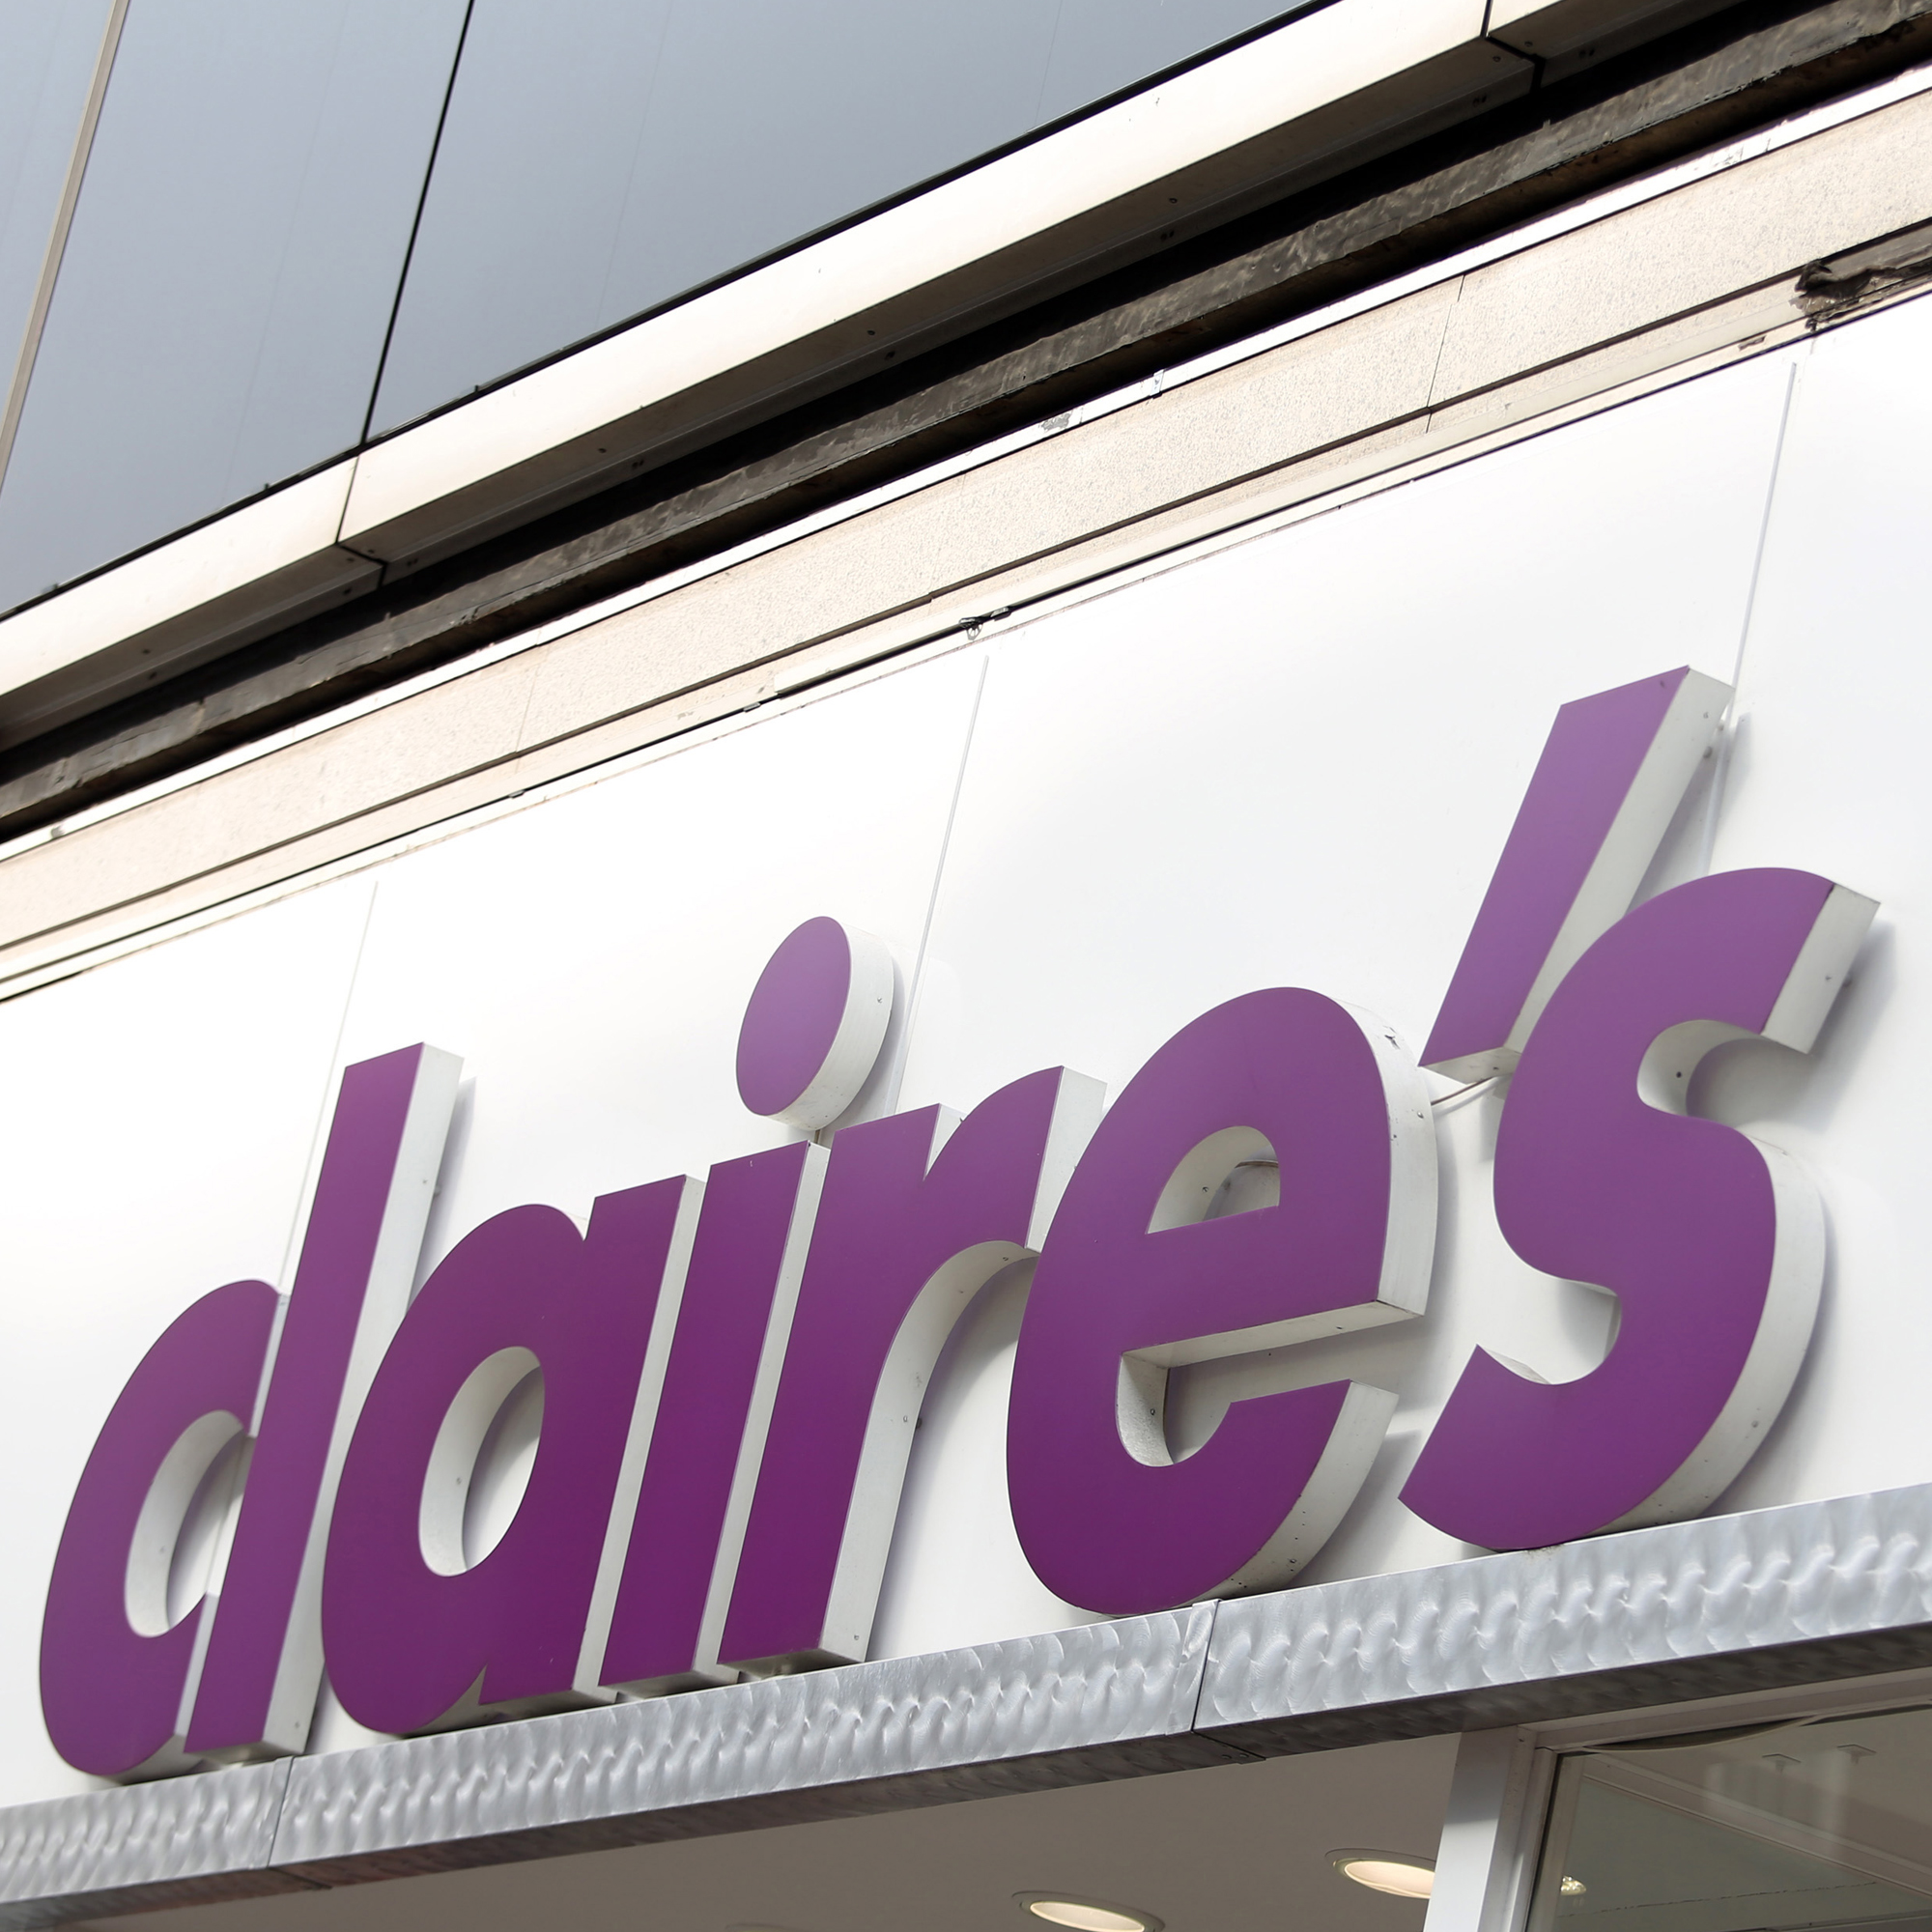 Claire's Accessories Jewelry Stores As Distress Deepens